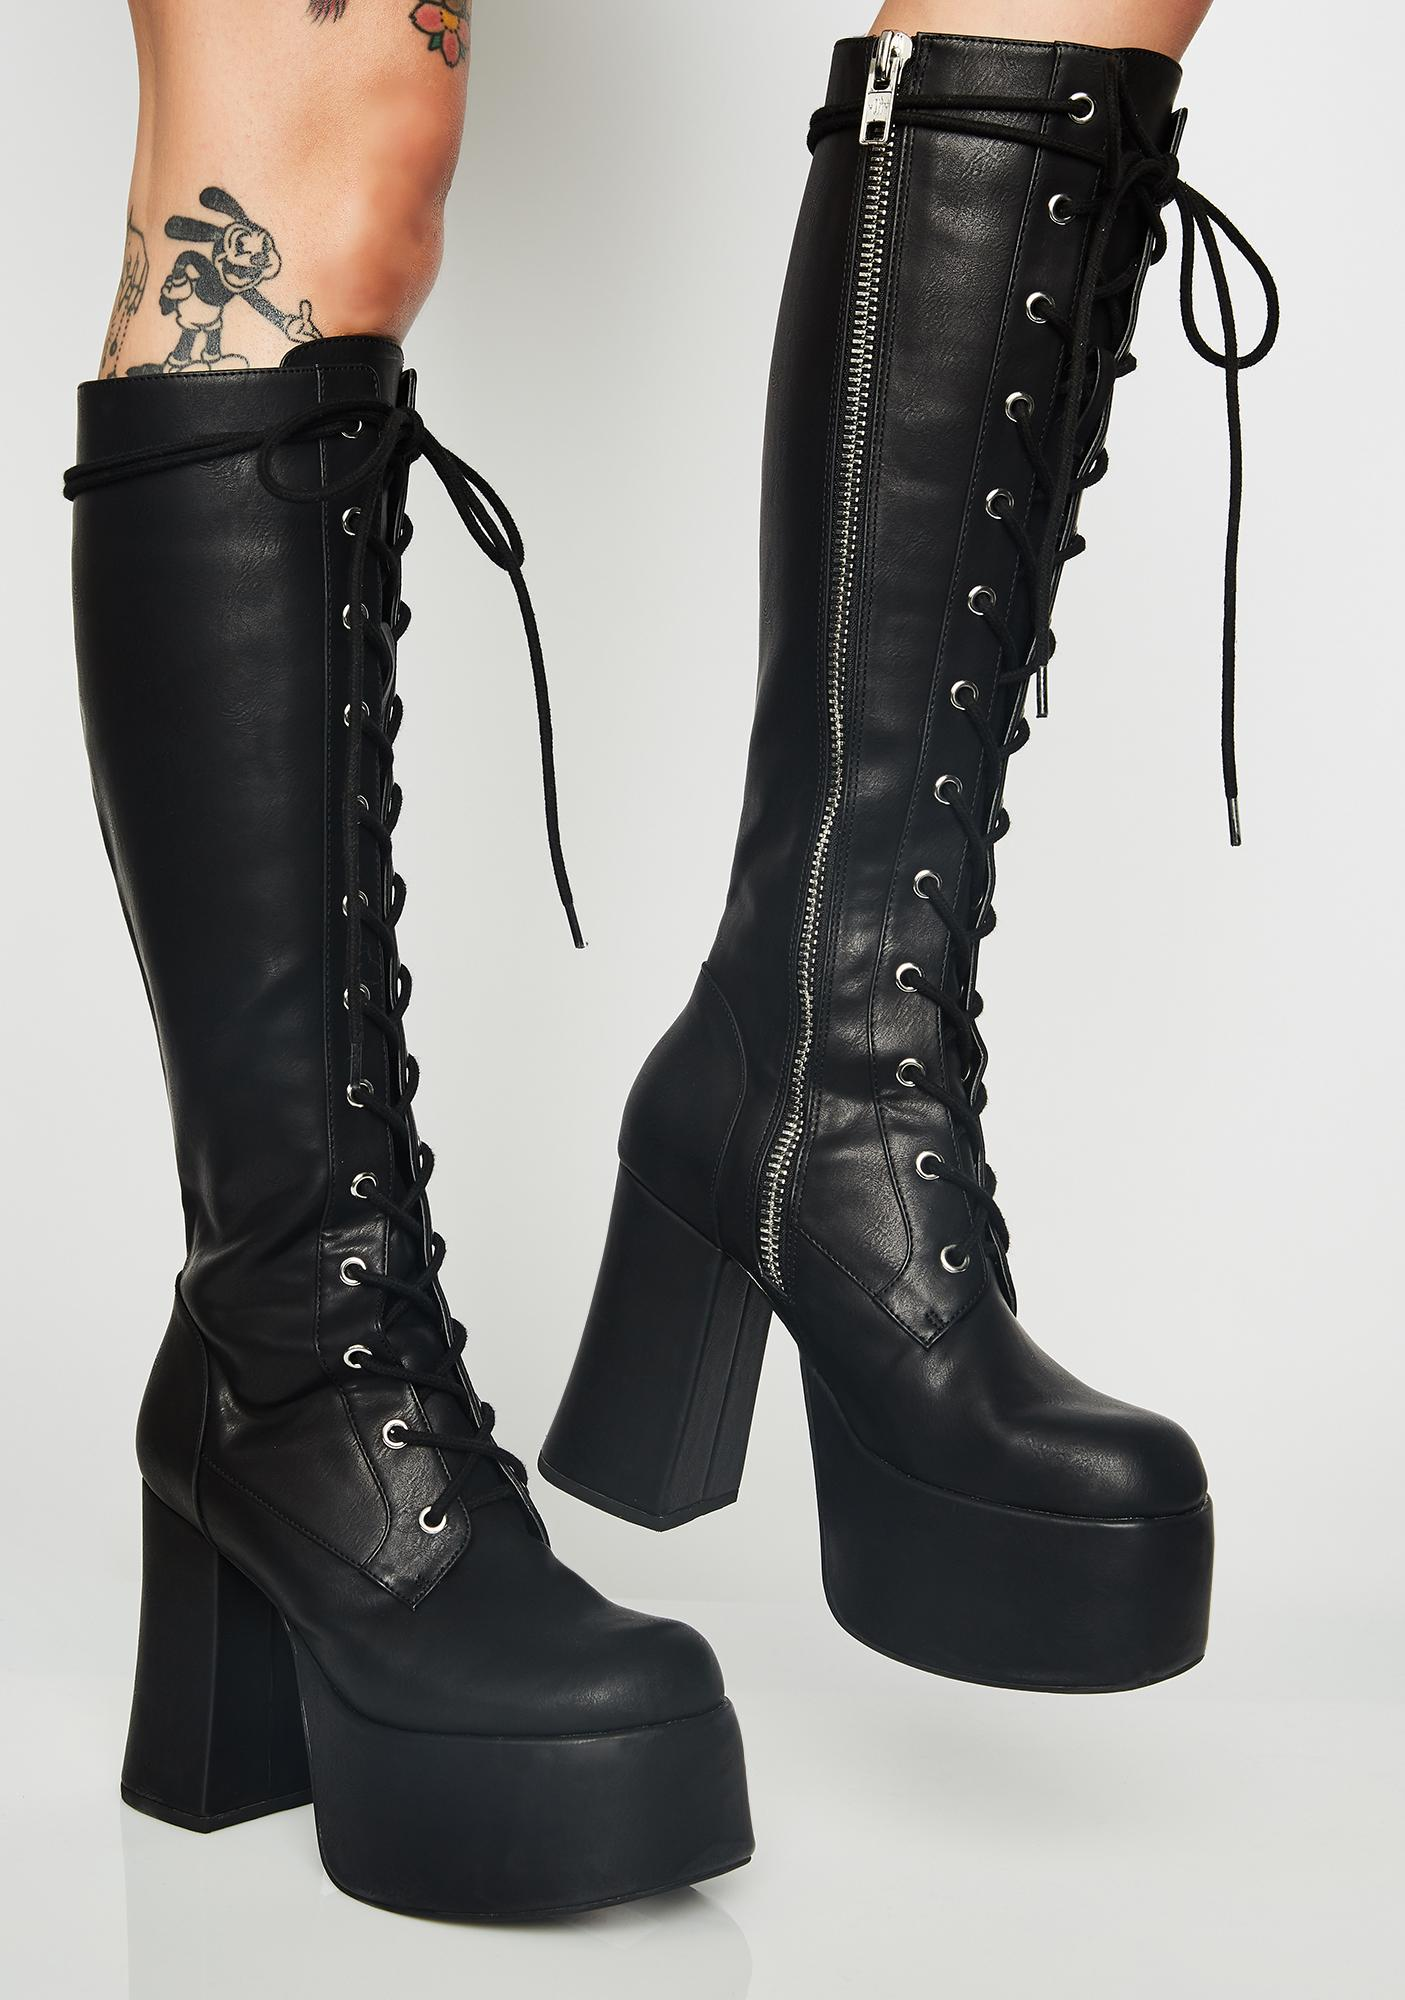 32bd7821fdbd58 Current Mood Twisted Sis Platform Boots